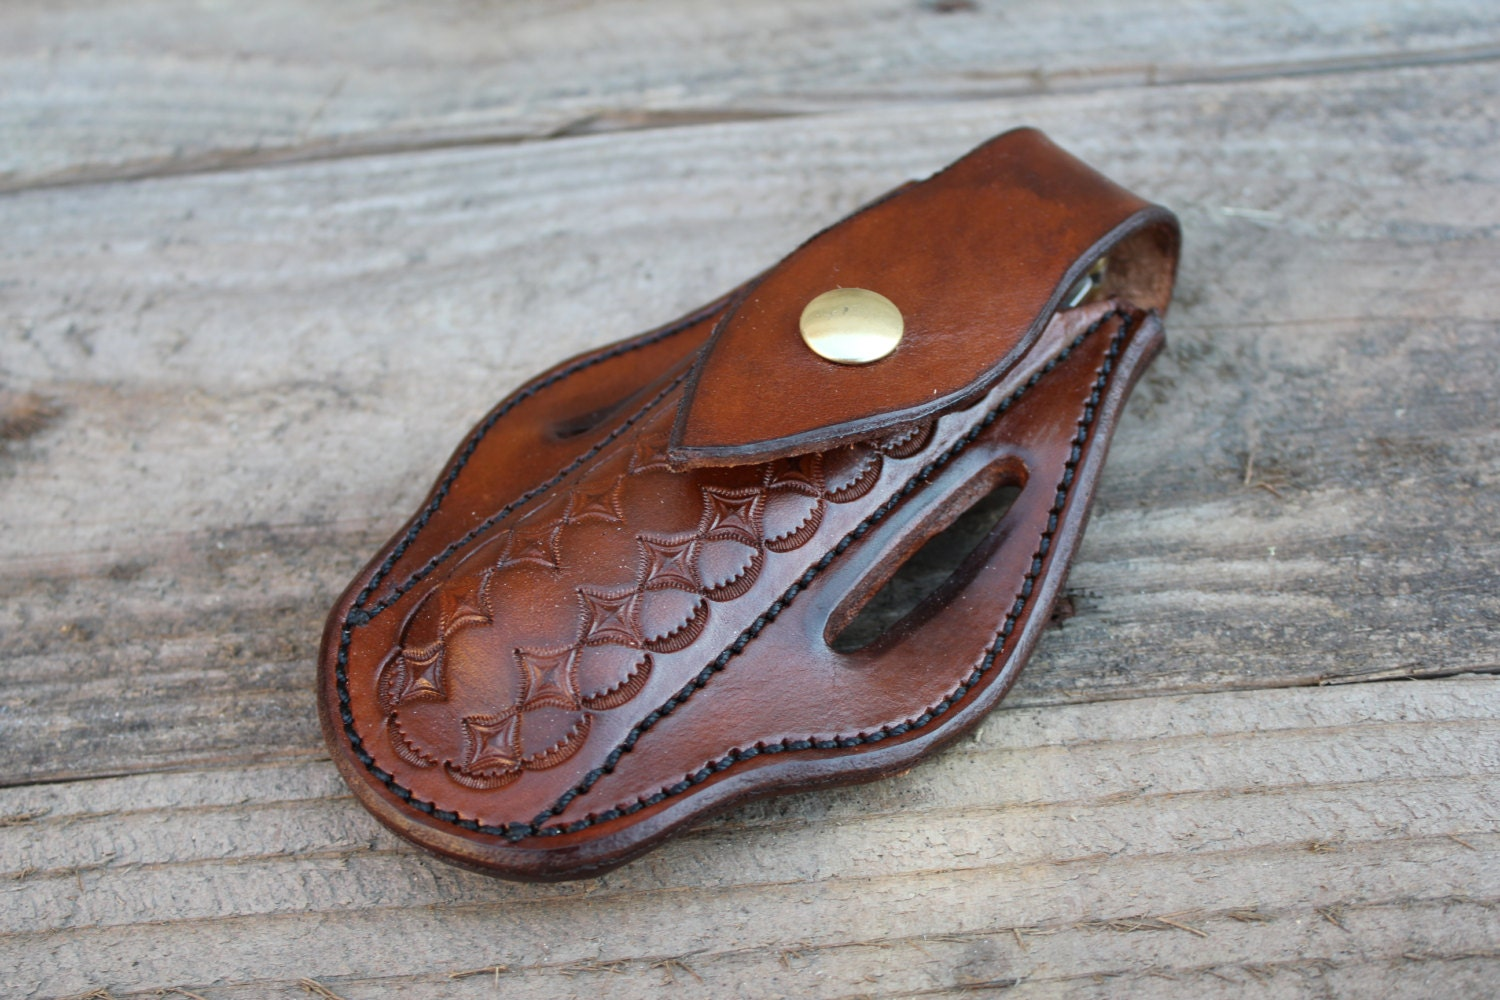 Custom Leather Knife Sheath for Large Folding Knives by TIN